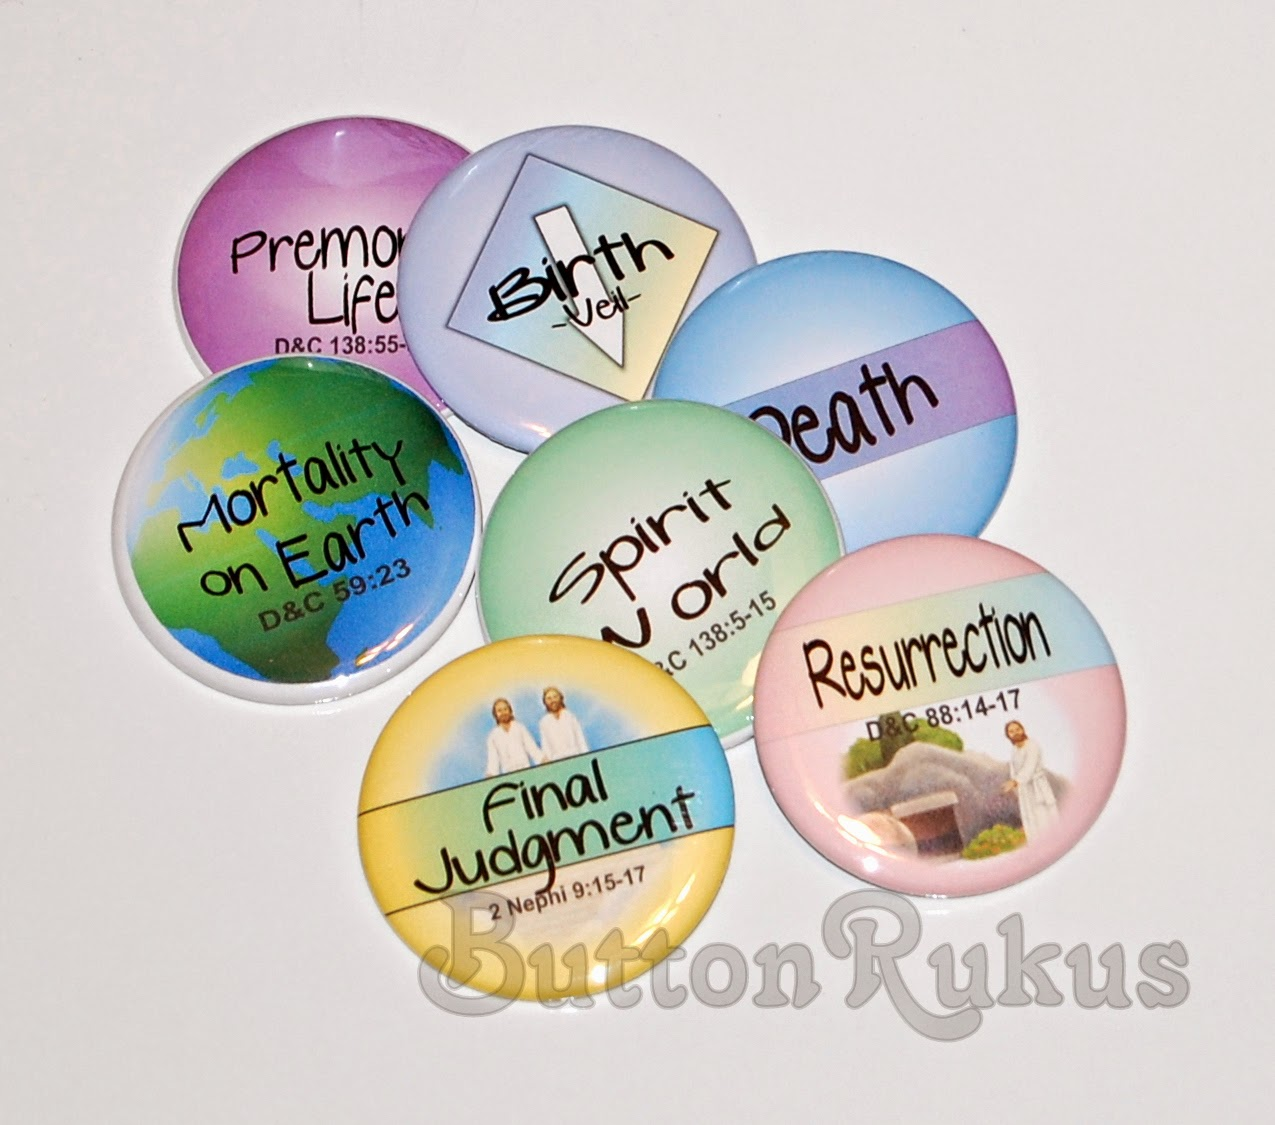 https://www.etsy.com/listing/168936289/lds-plan-of-salvation-missionary-or?ref=shop_home_feat_1